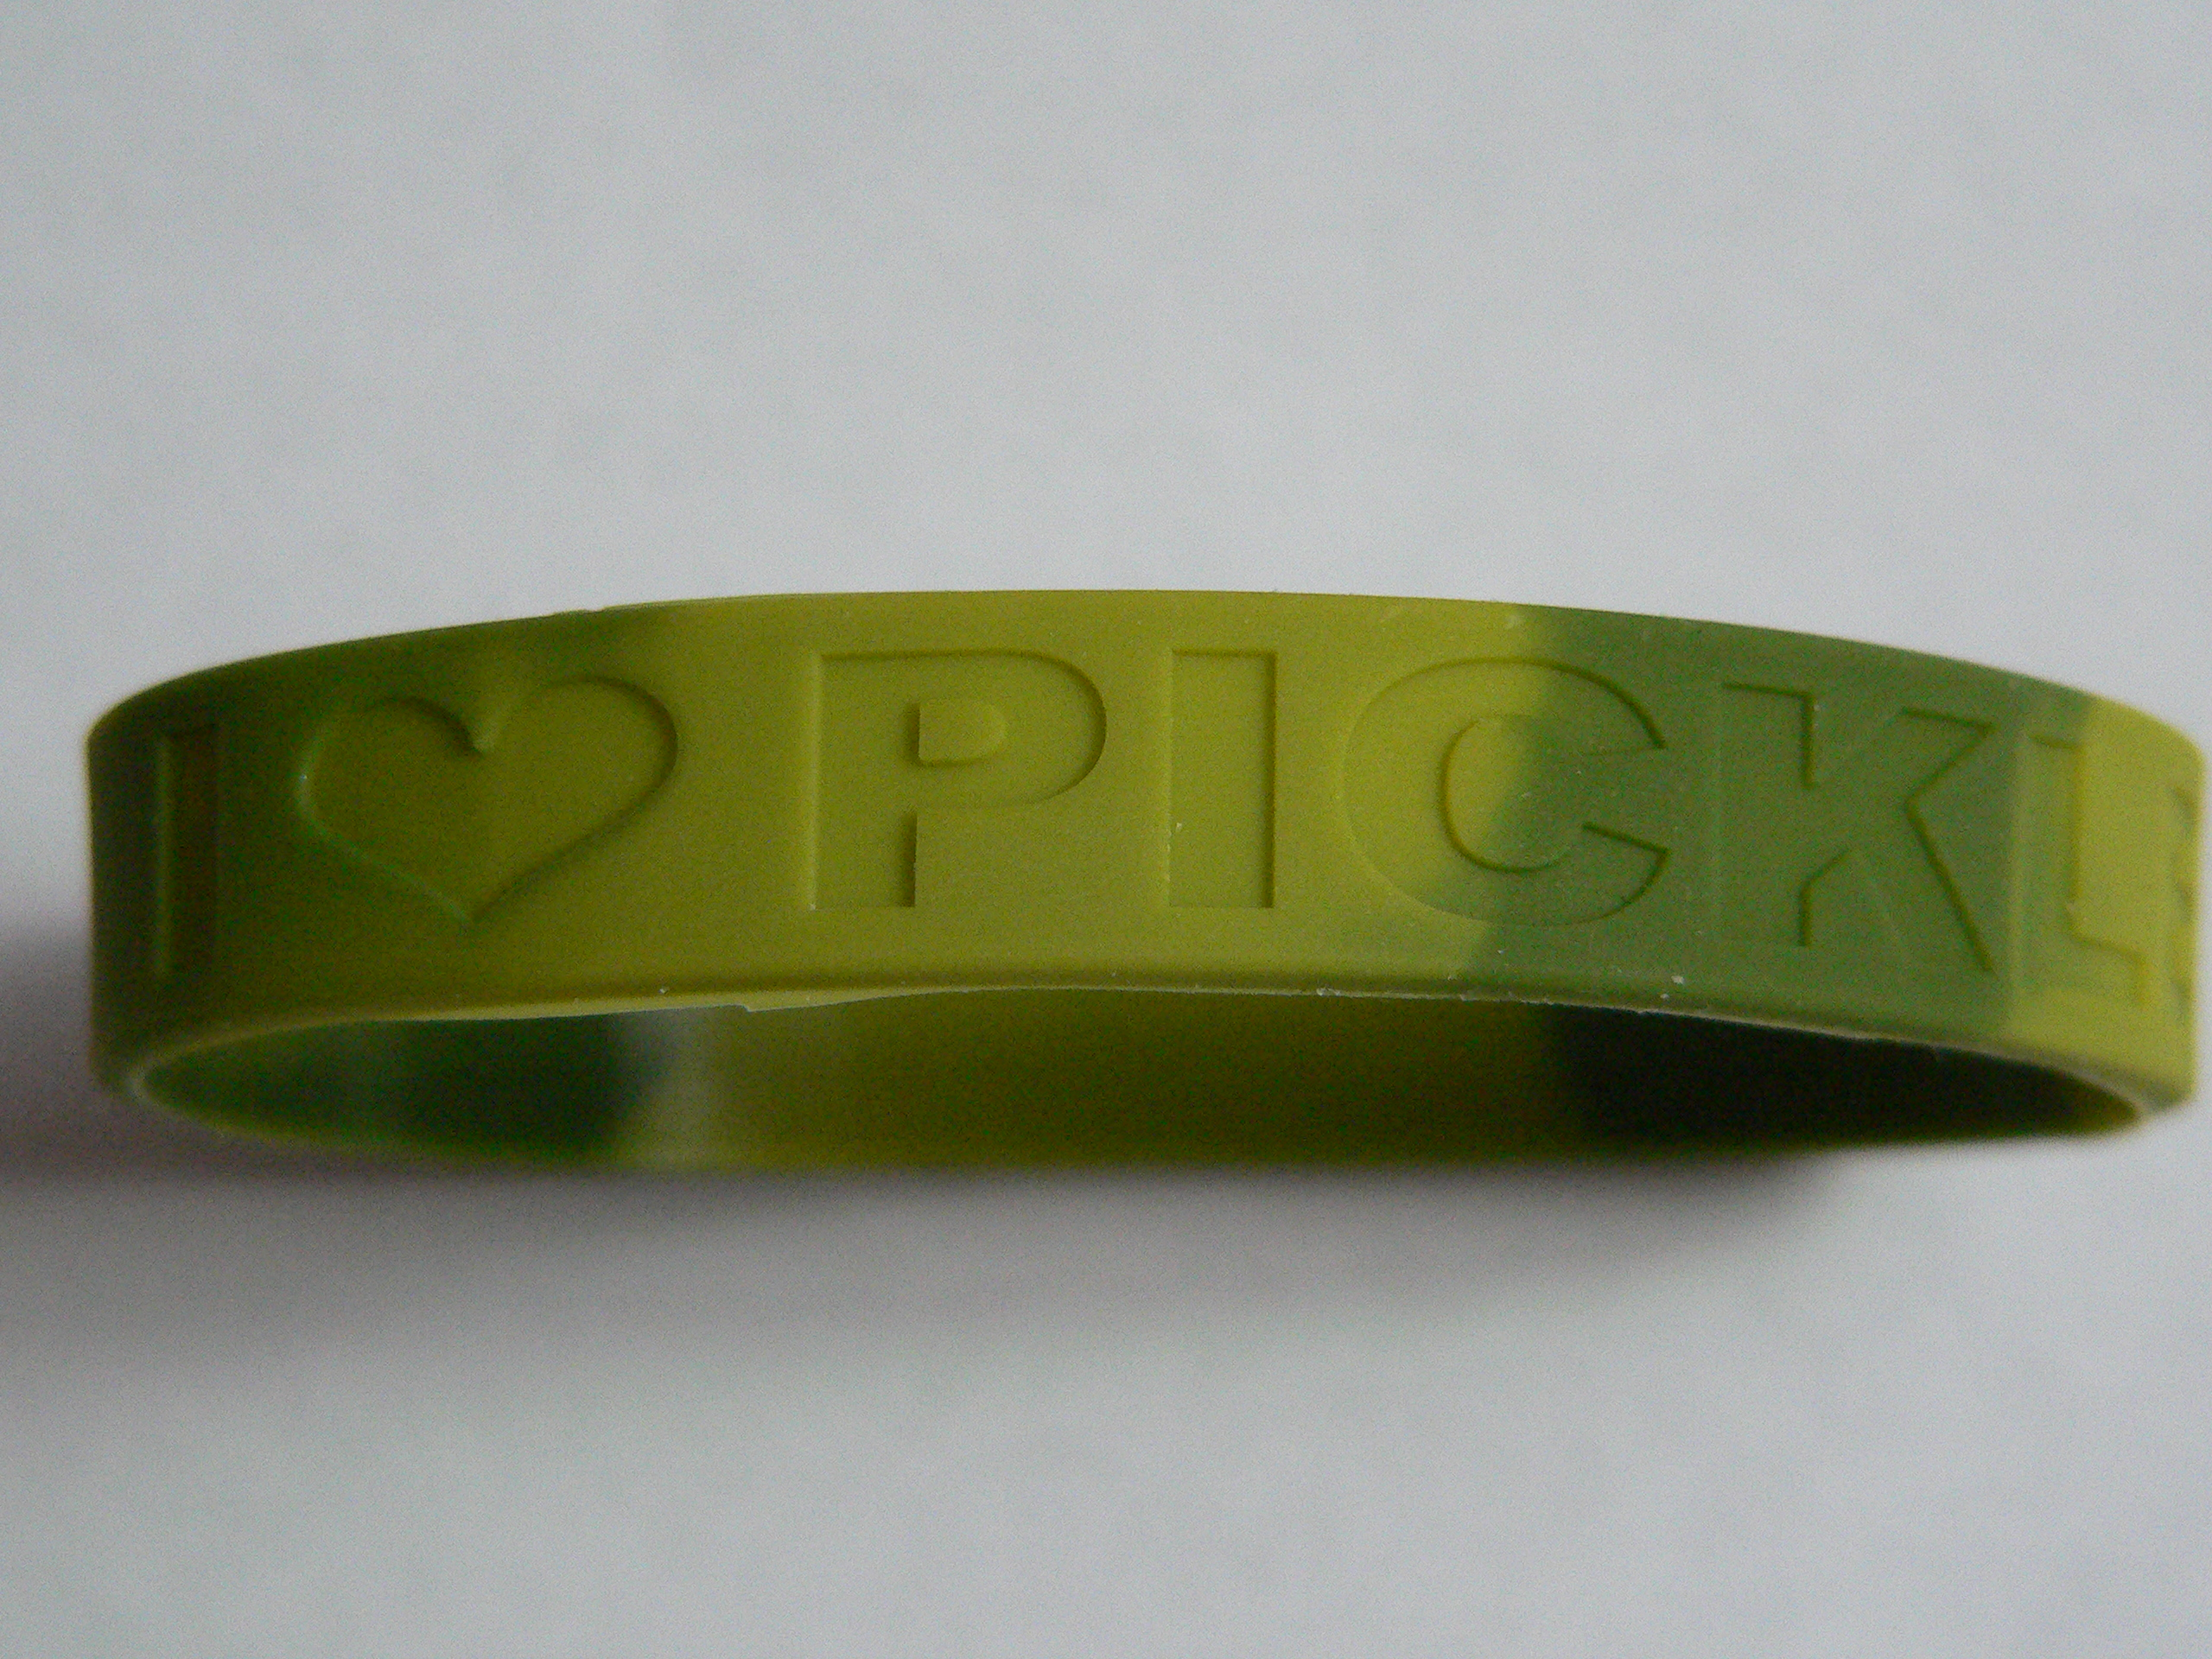 Wristband pickles small